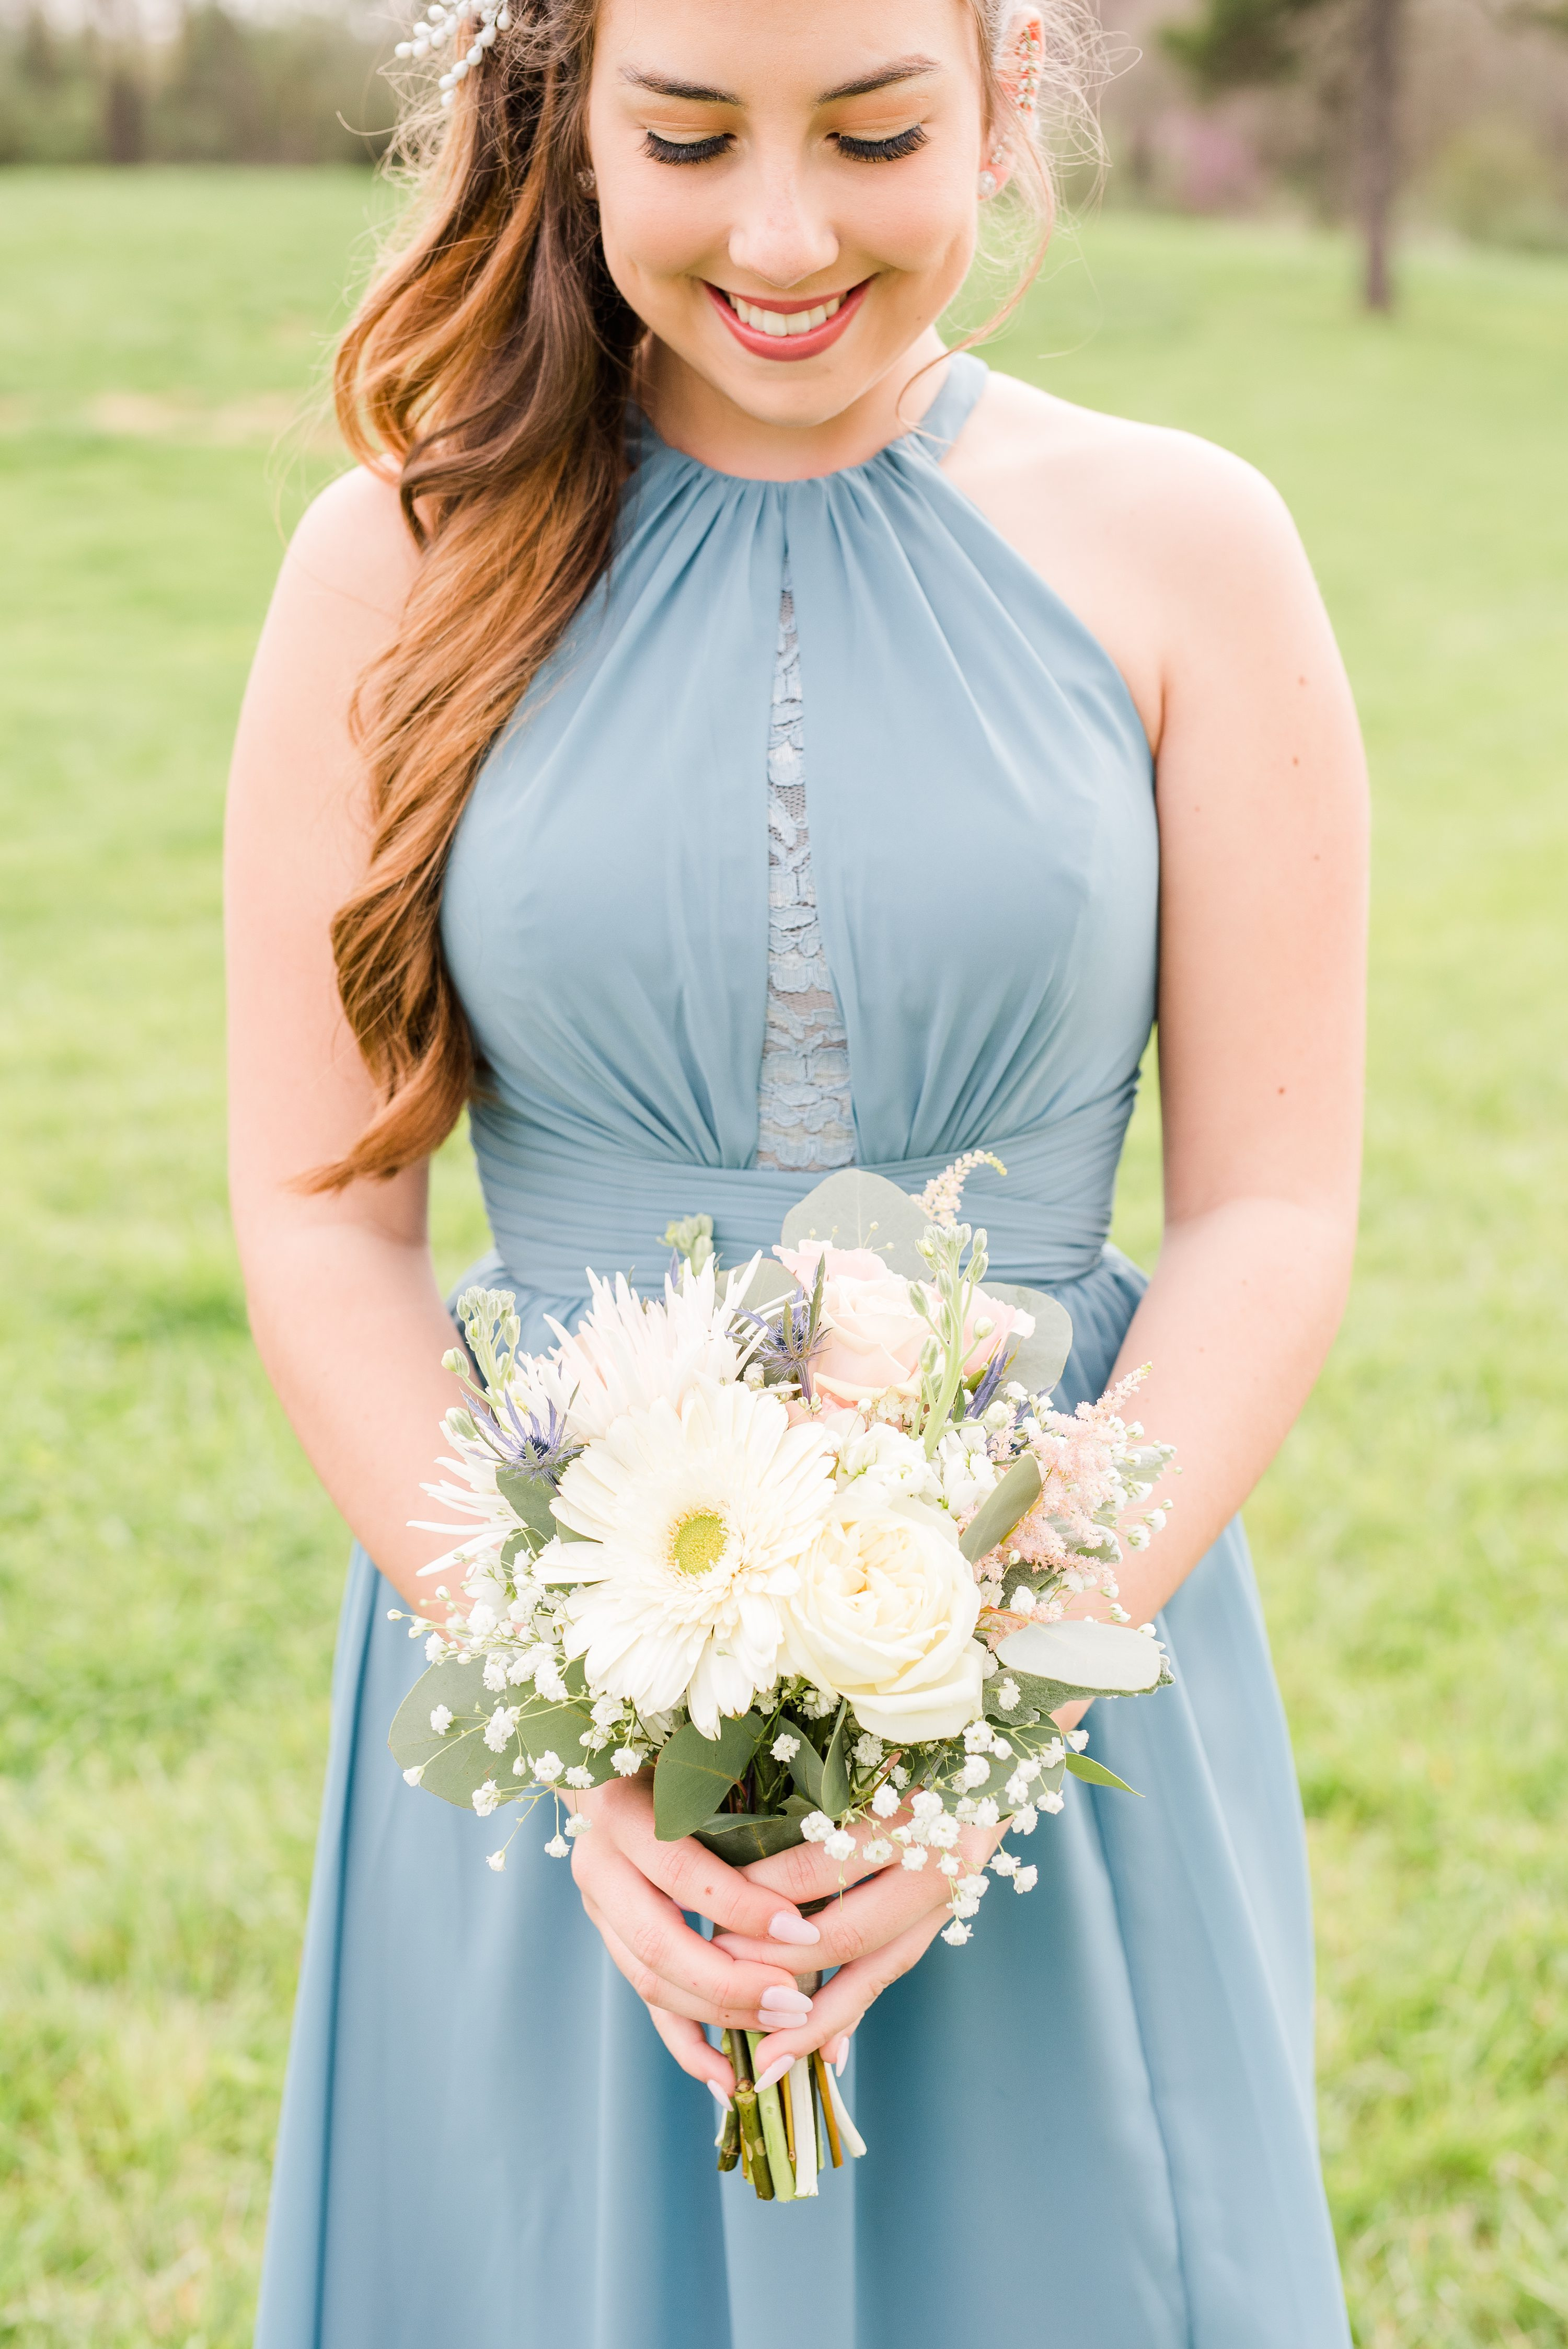 Charlottesville,Spring,Barn at Edgewood,bride and bridesmaids,bridesmaids,bridesmaid flowers,maid of honor